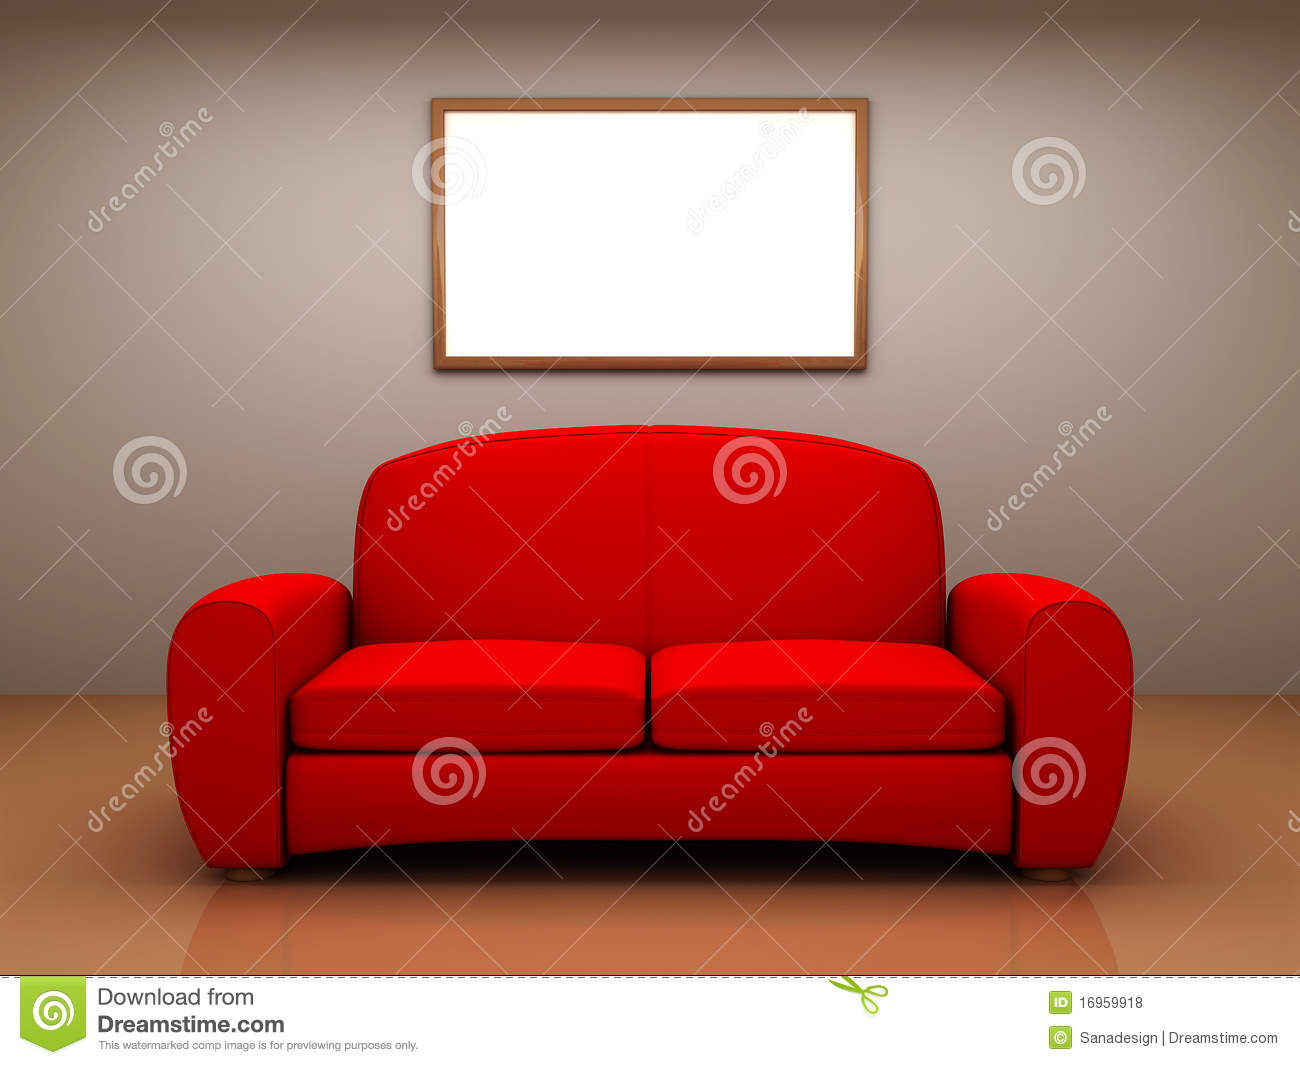 rotes sofa in einem raum mit einer unbelegten abbildung stock abbildung illustration von. Black Bedroom Furniture Sets. Home Design Ideas